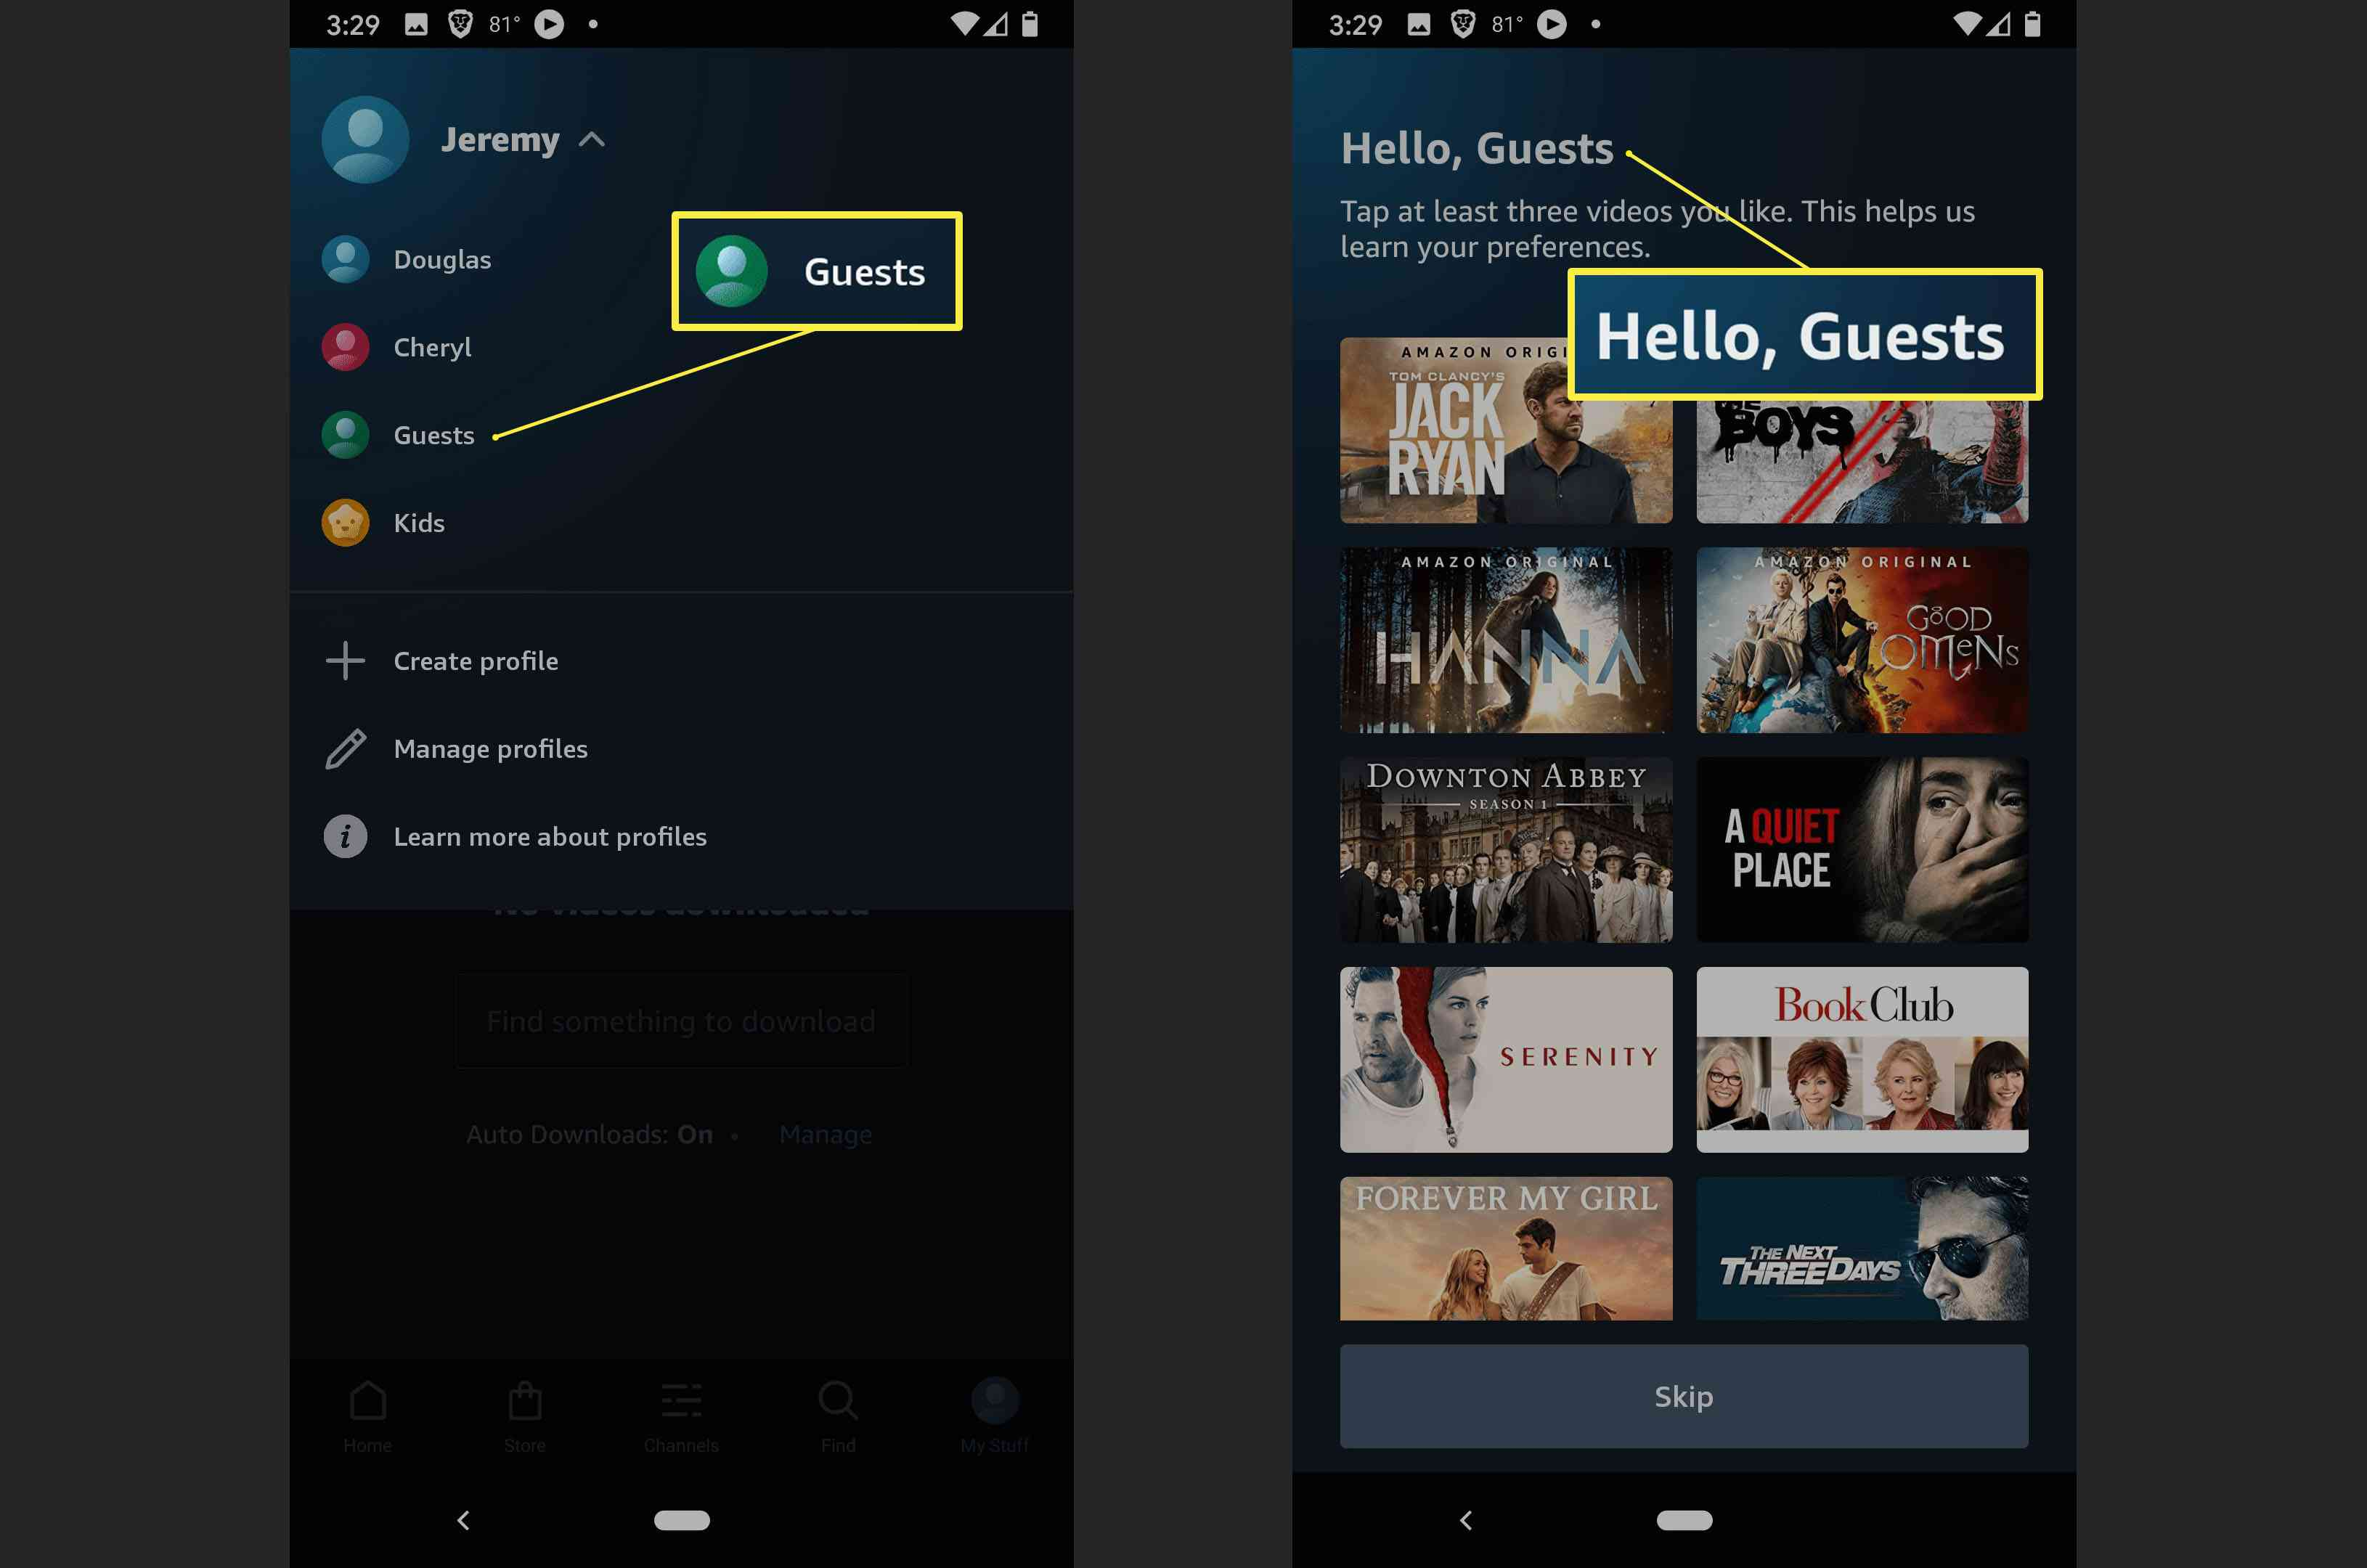 The steps to take to switch profiles on Amazon Prime Video.